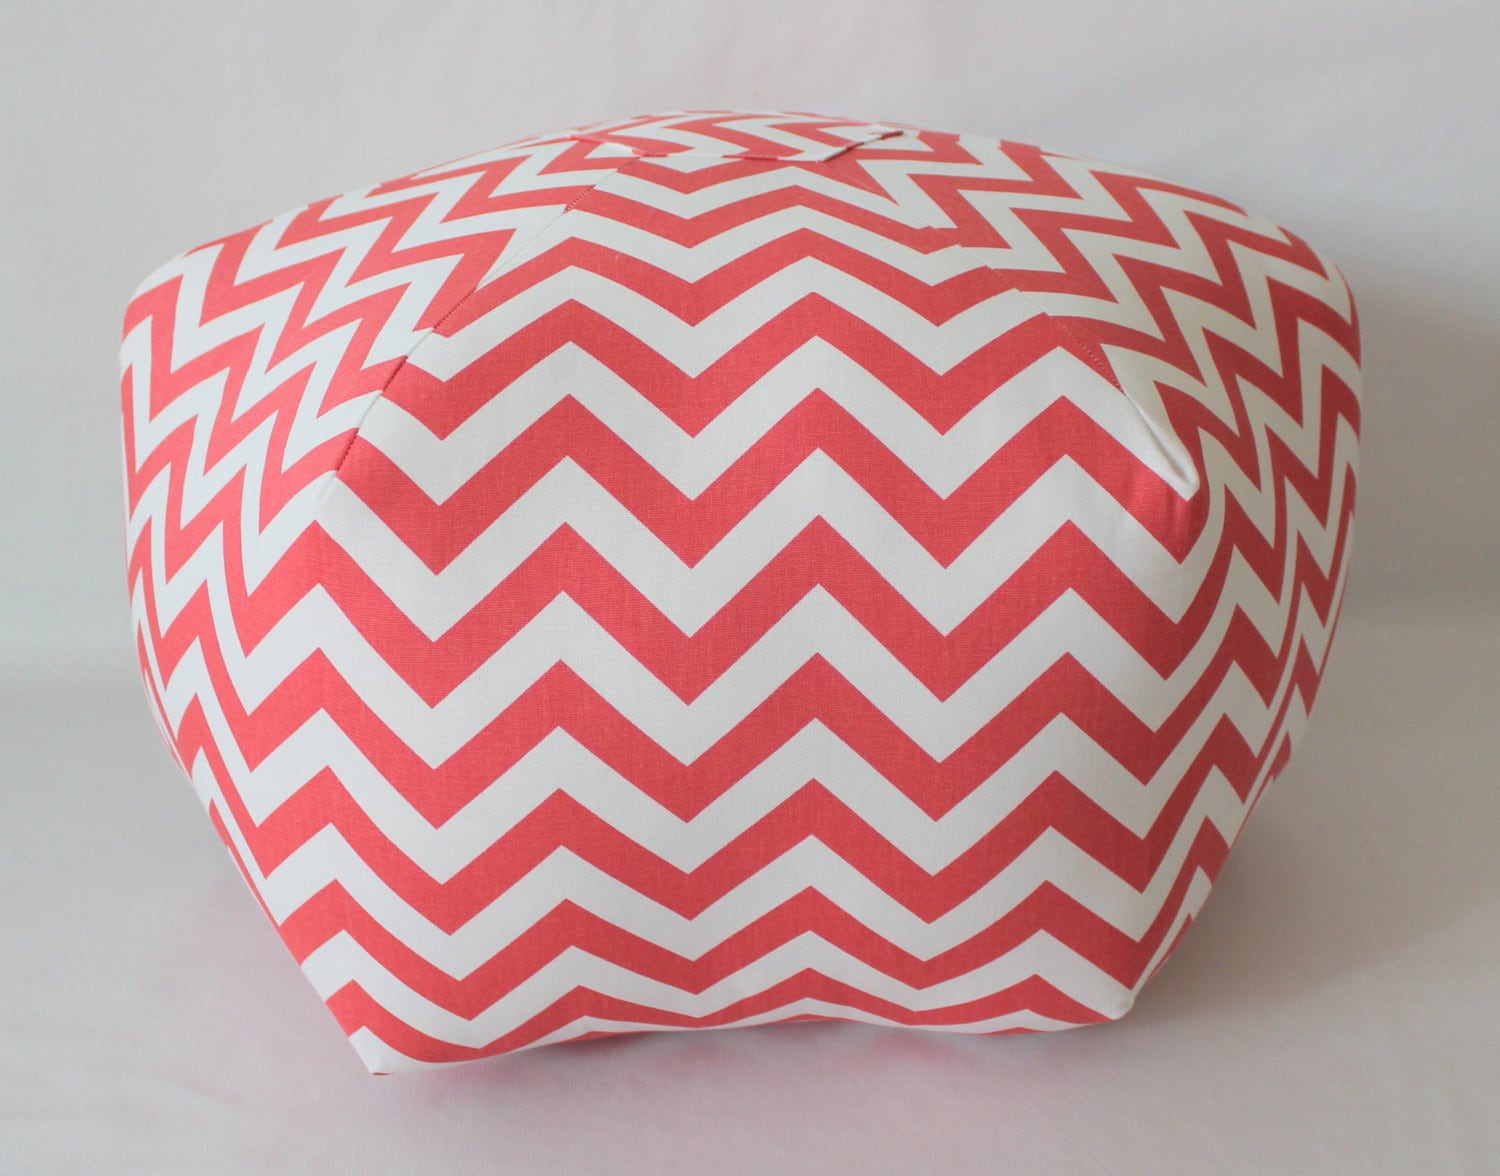 24 Ottoman Pouf Floor Pillow Coral White Twill Zig Zag By